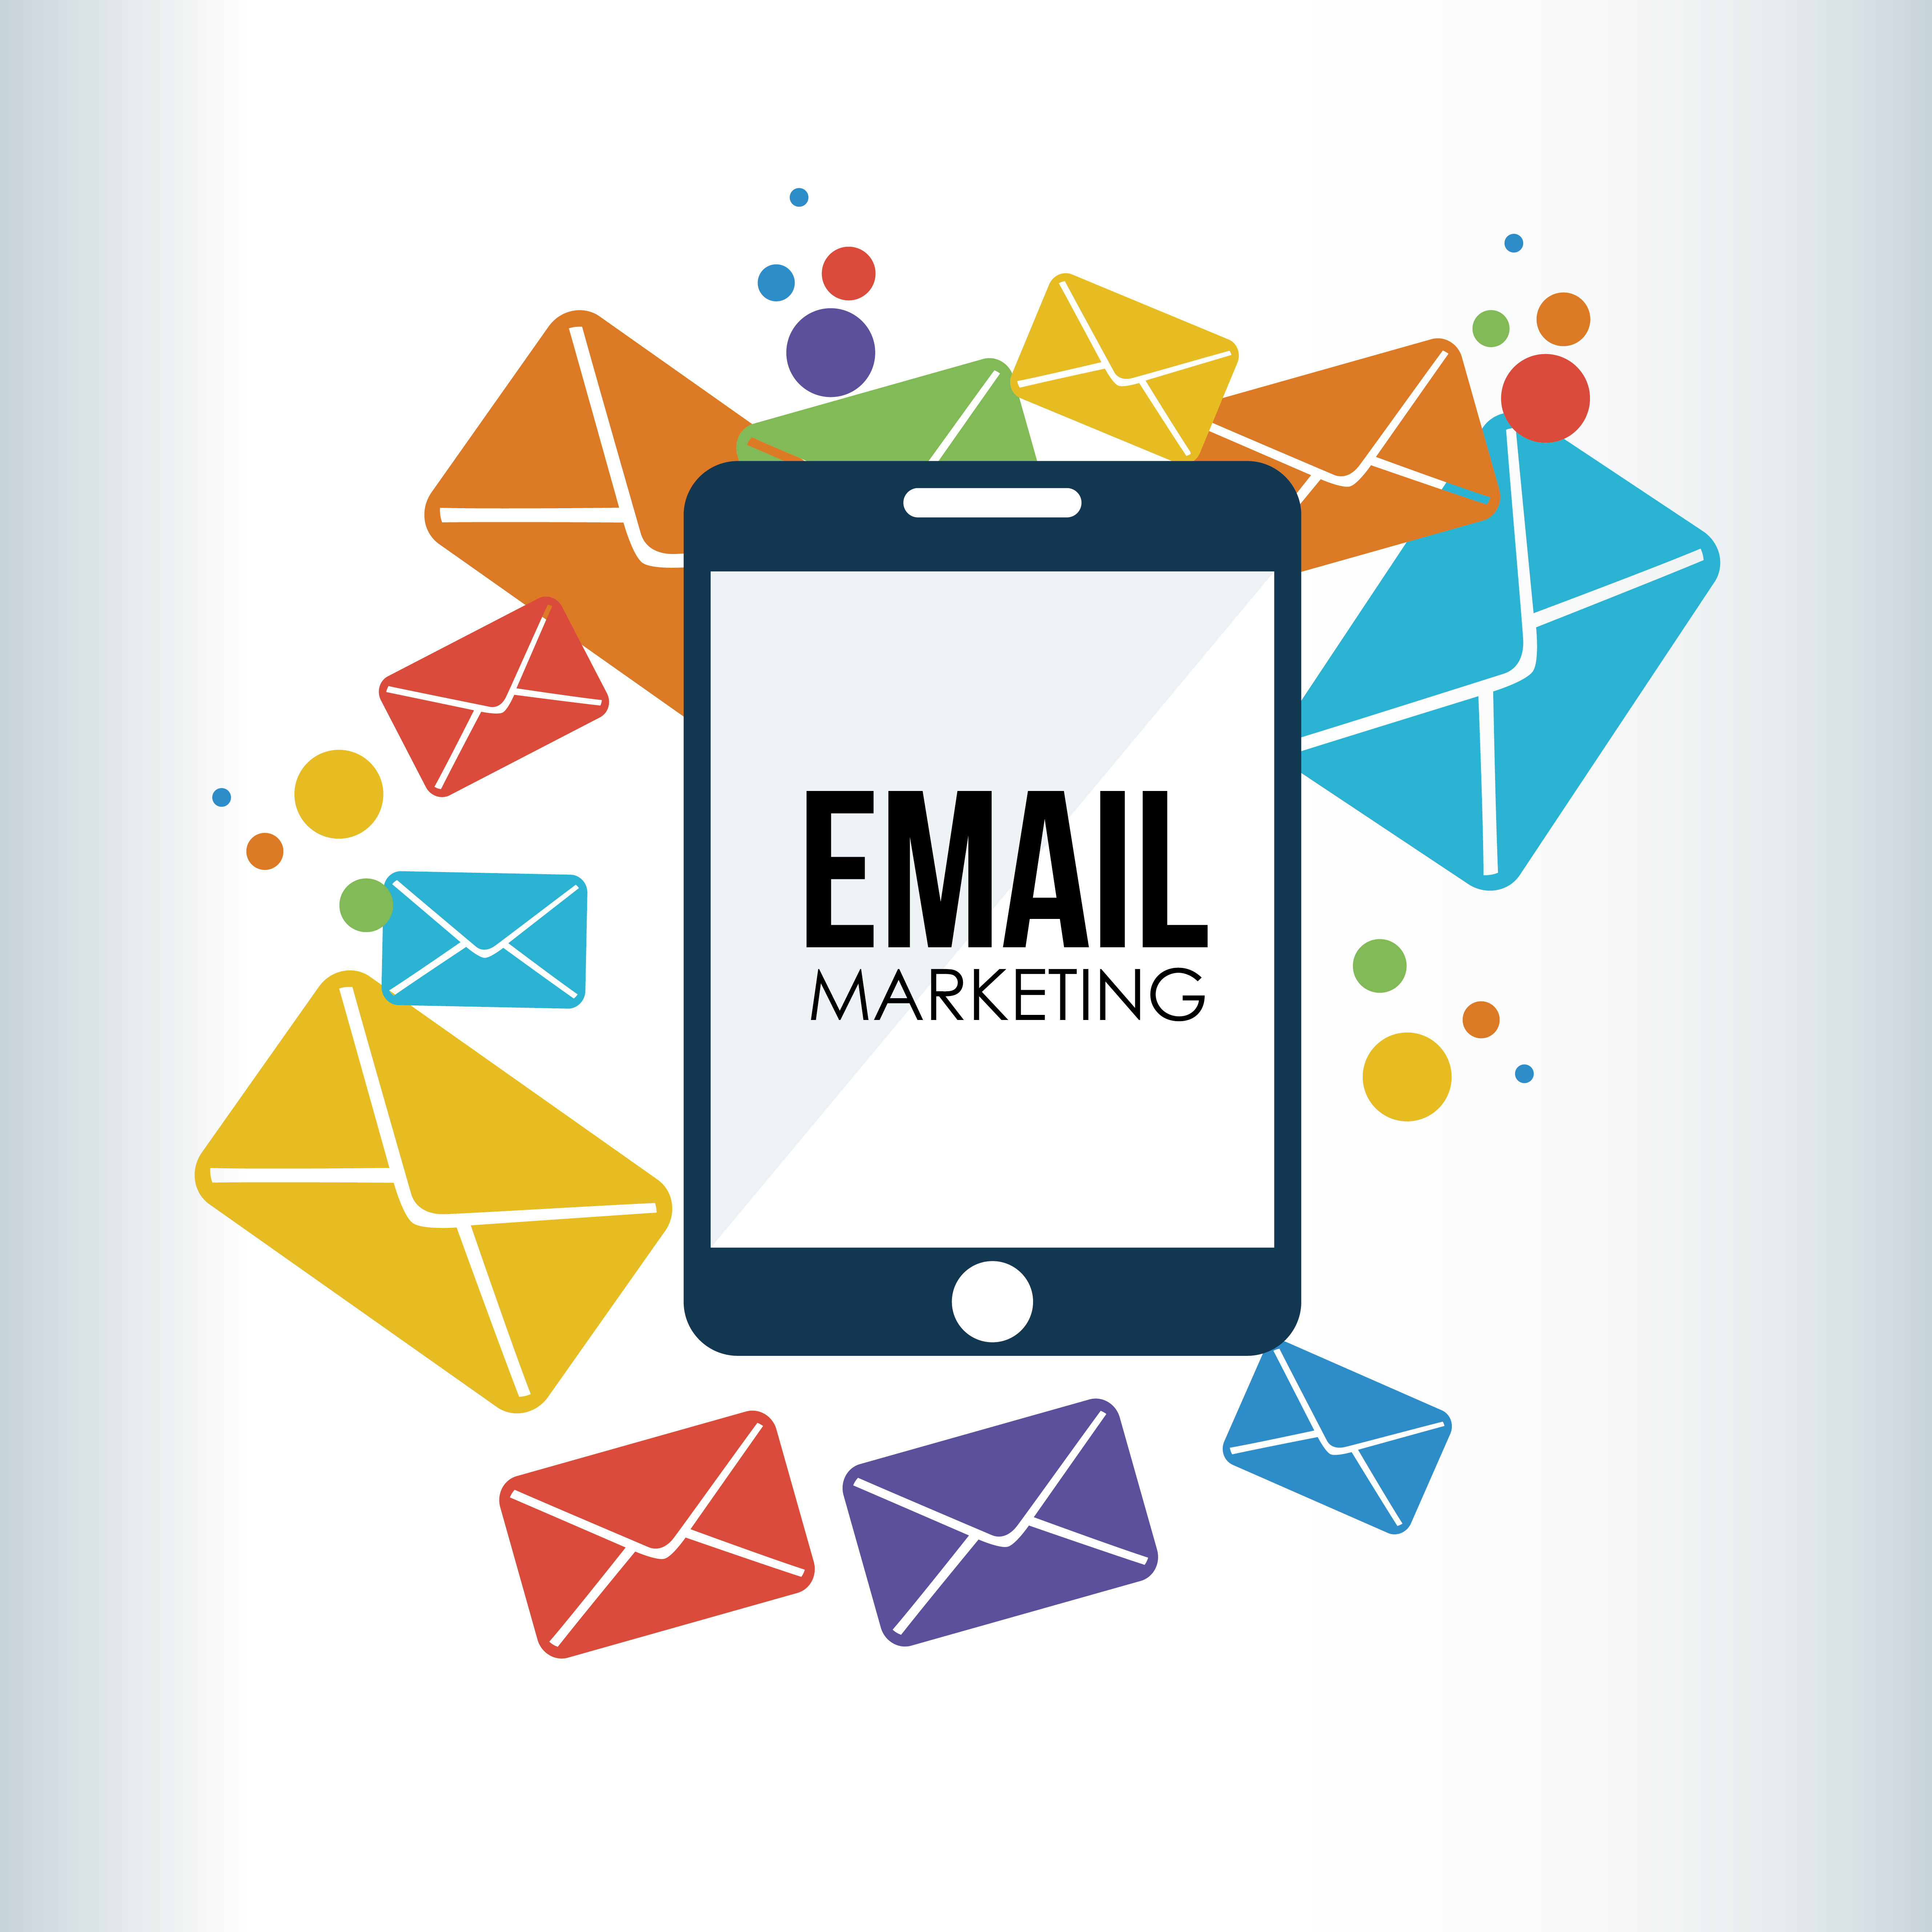 marketing email graphic sms service solutions social